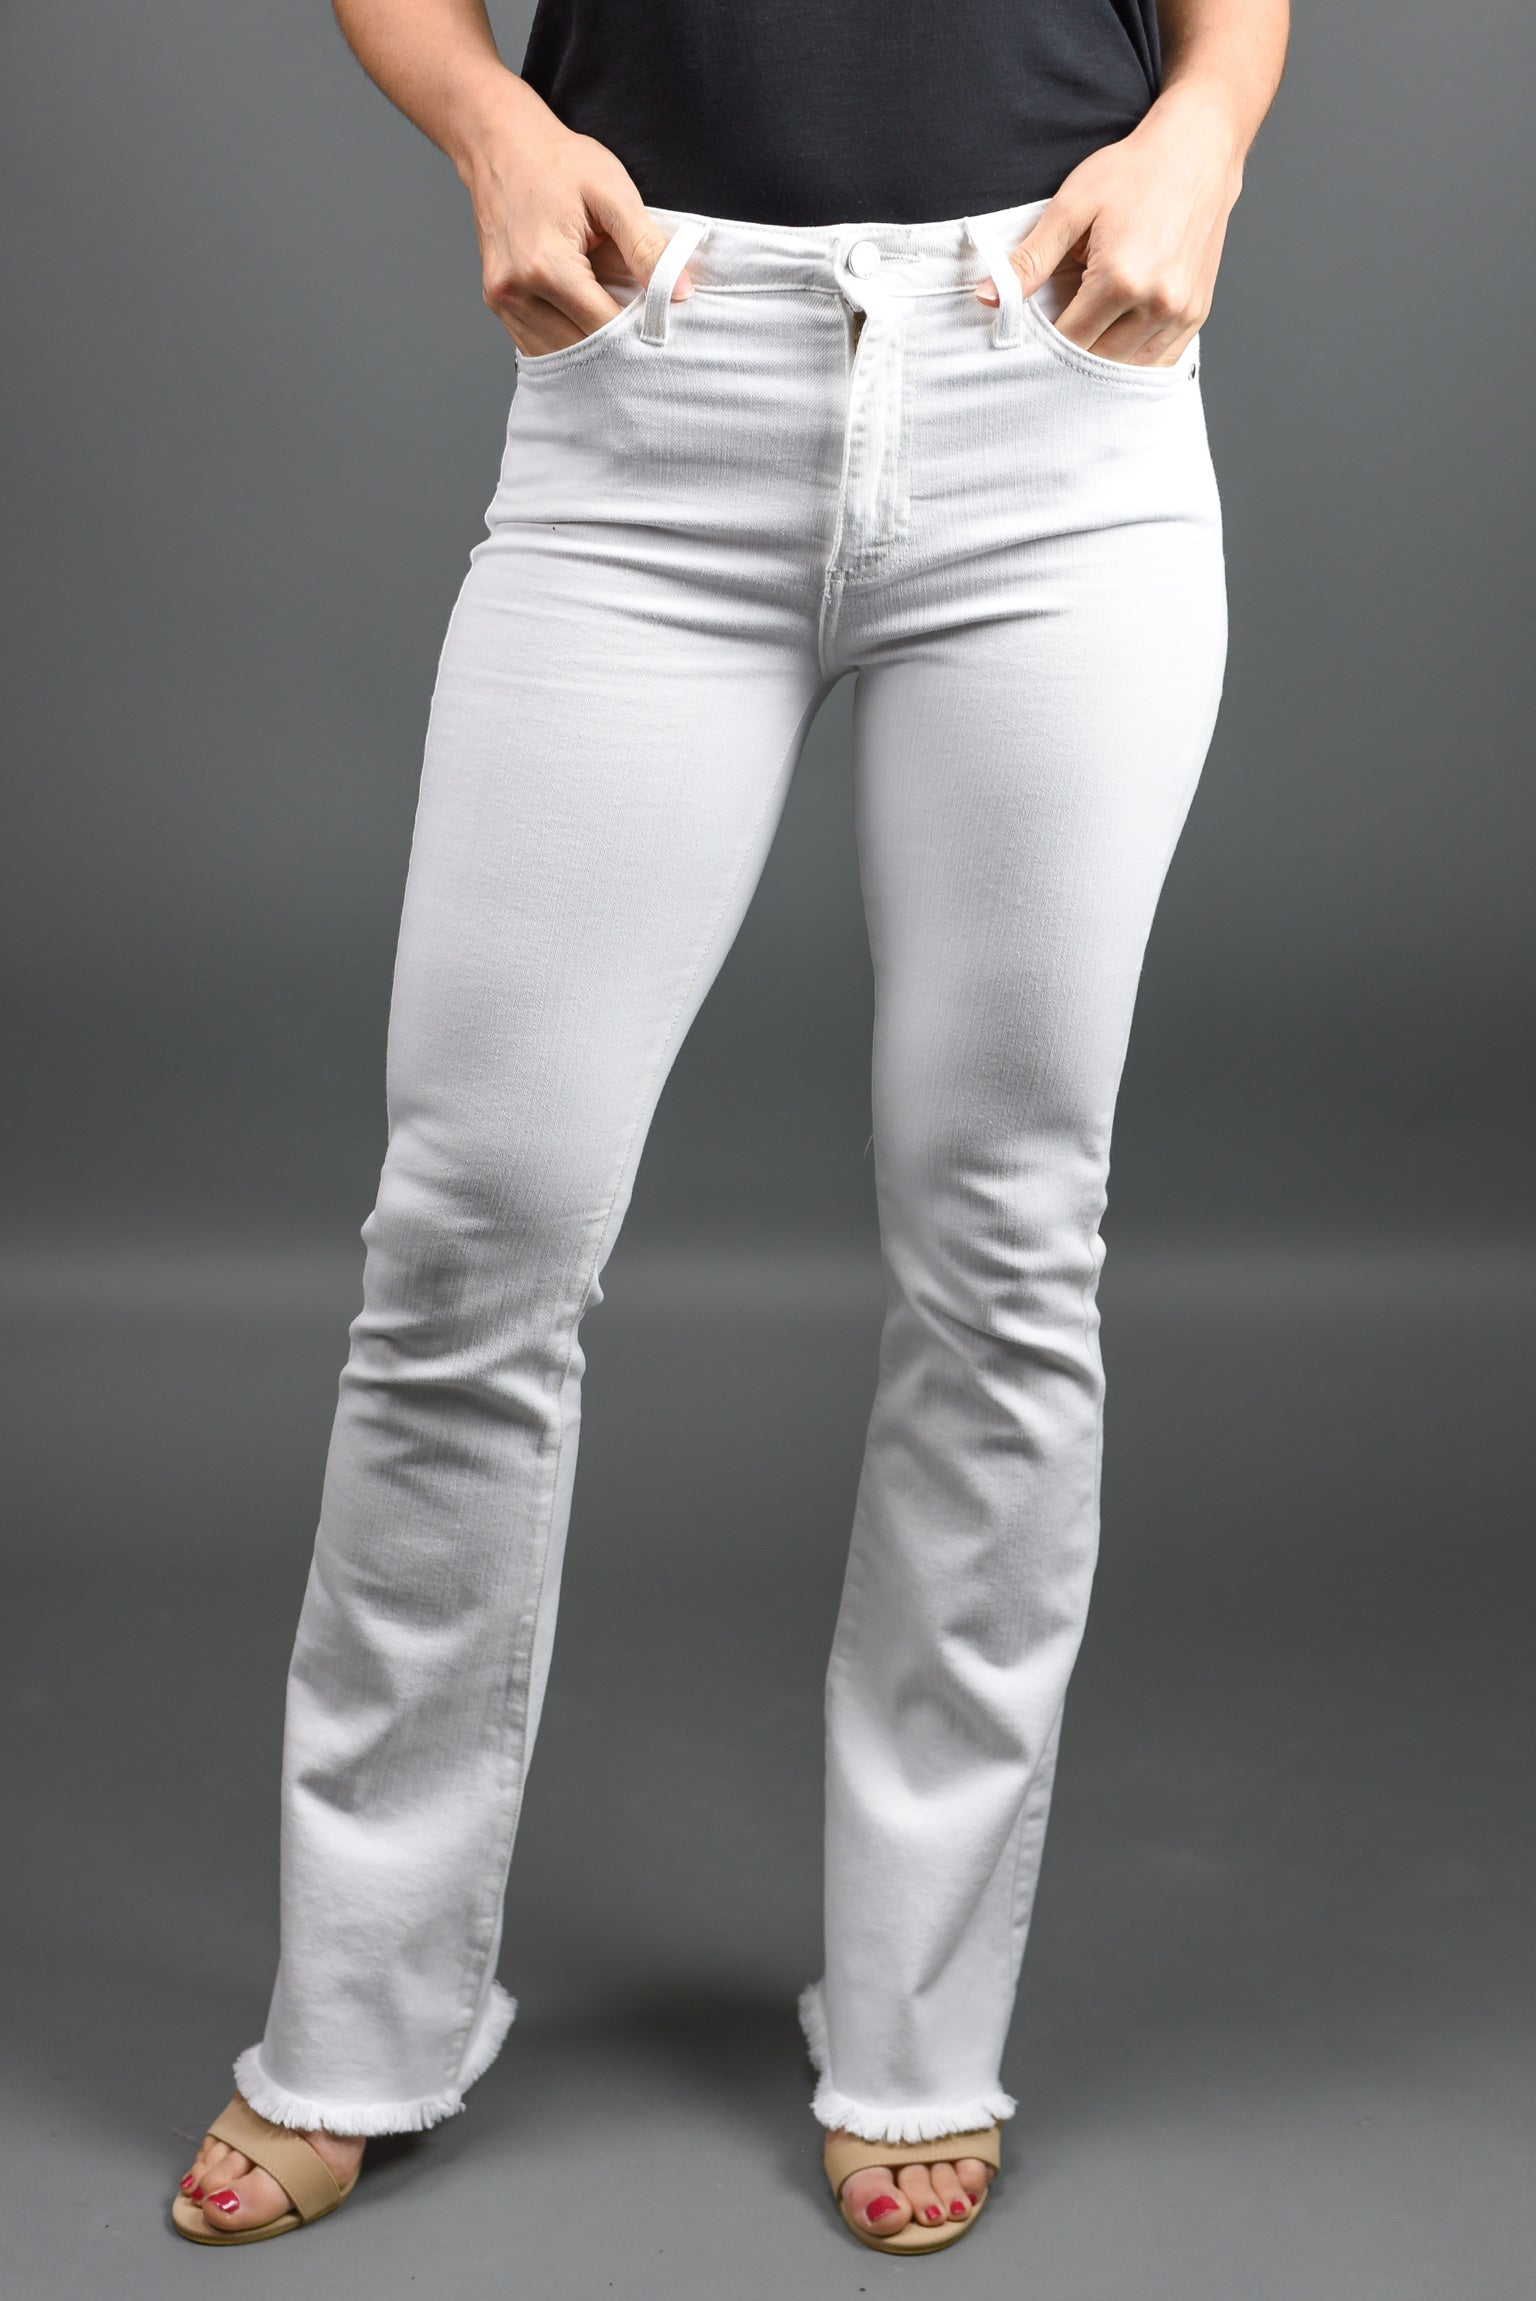 Natural Sugar Sweet White Flare Denim